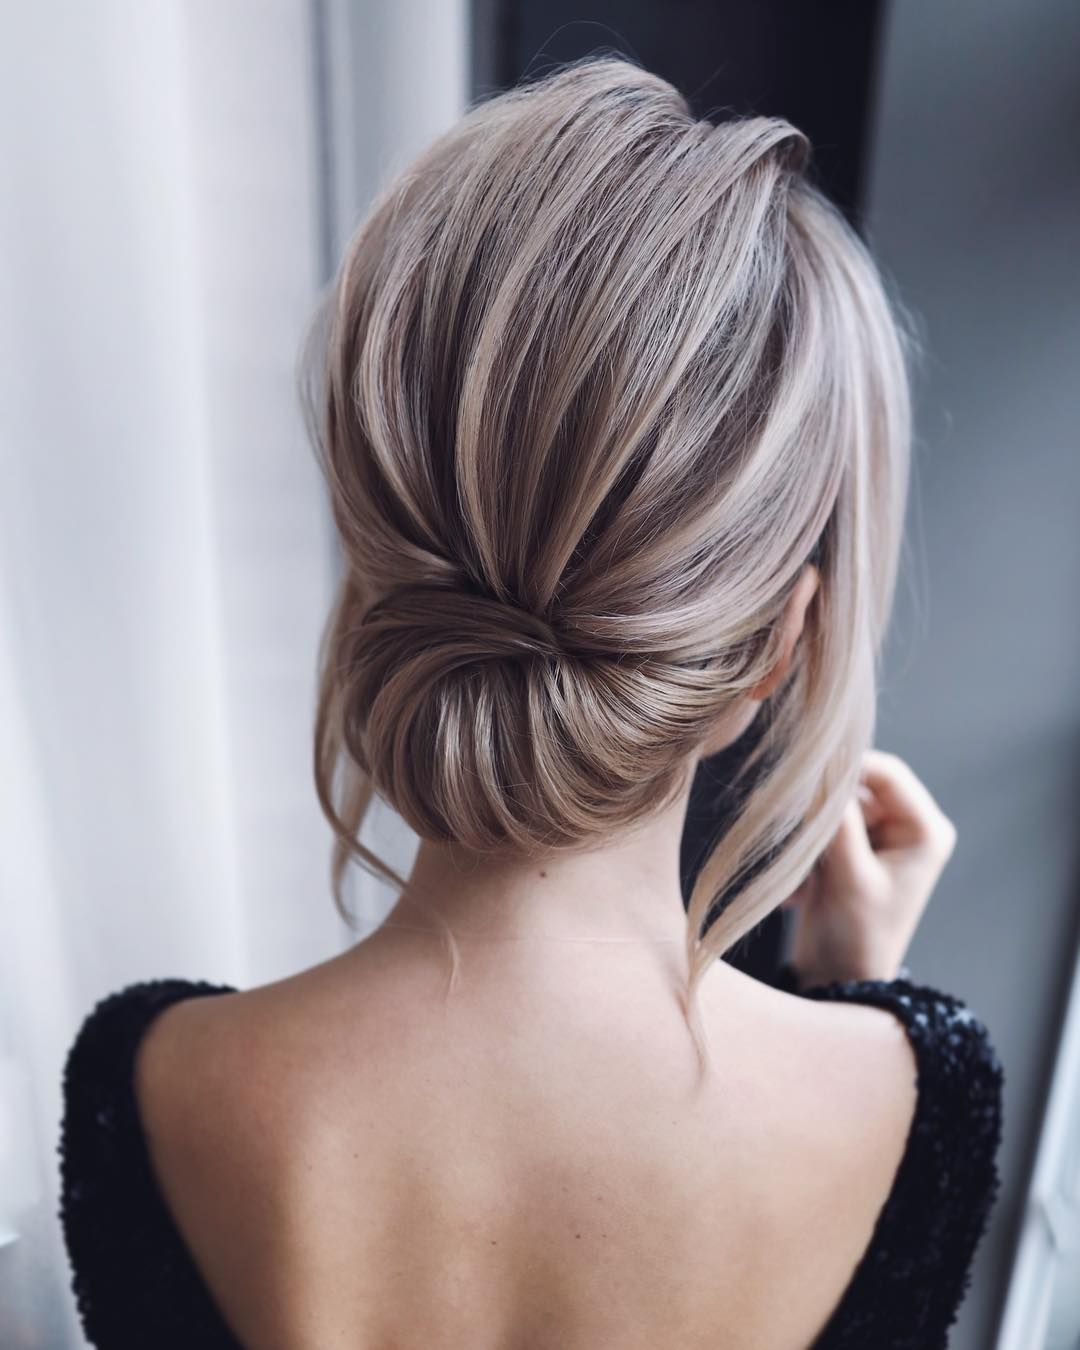 10 updos for medium length hair - prom & homecoming